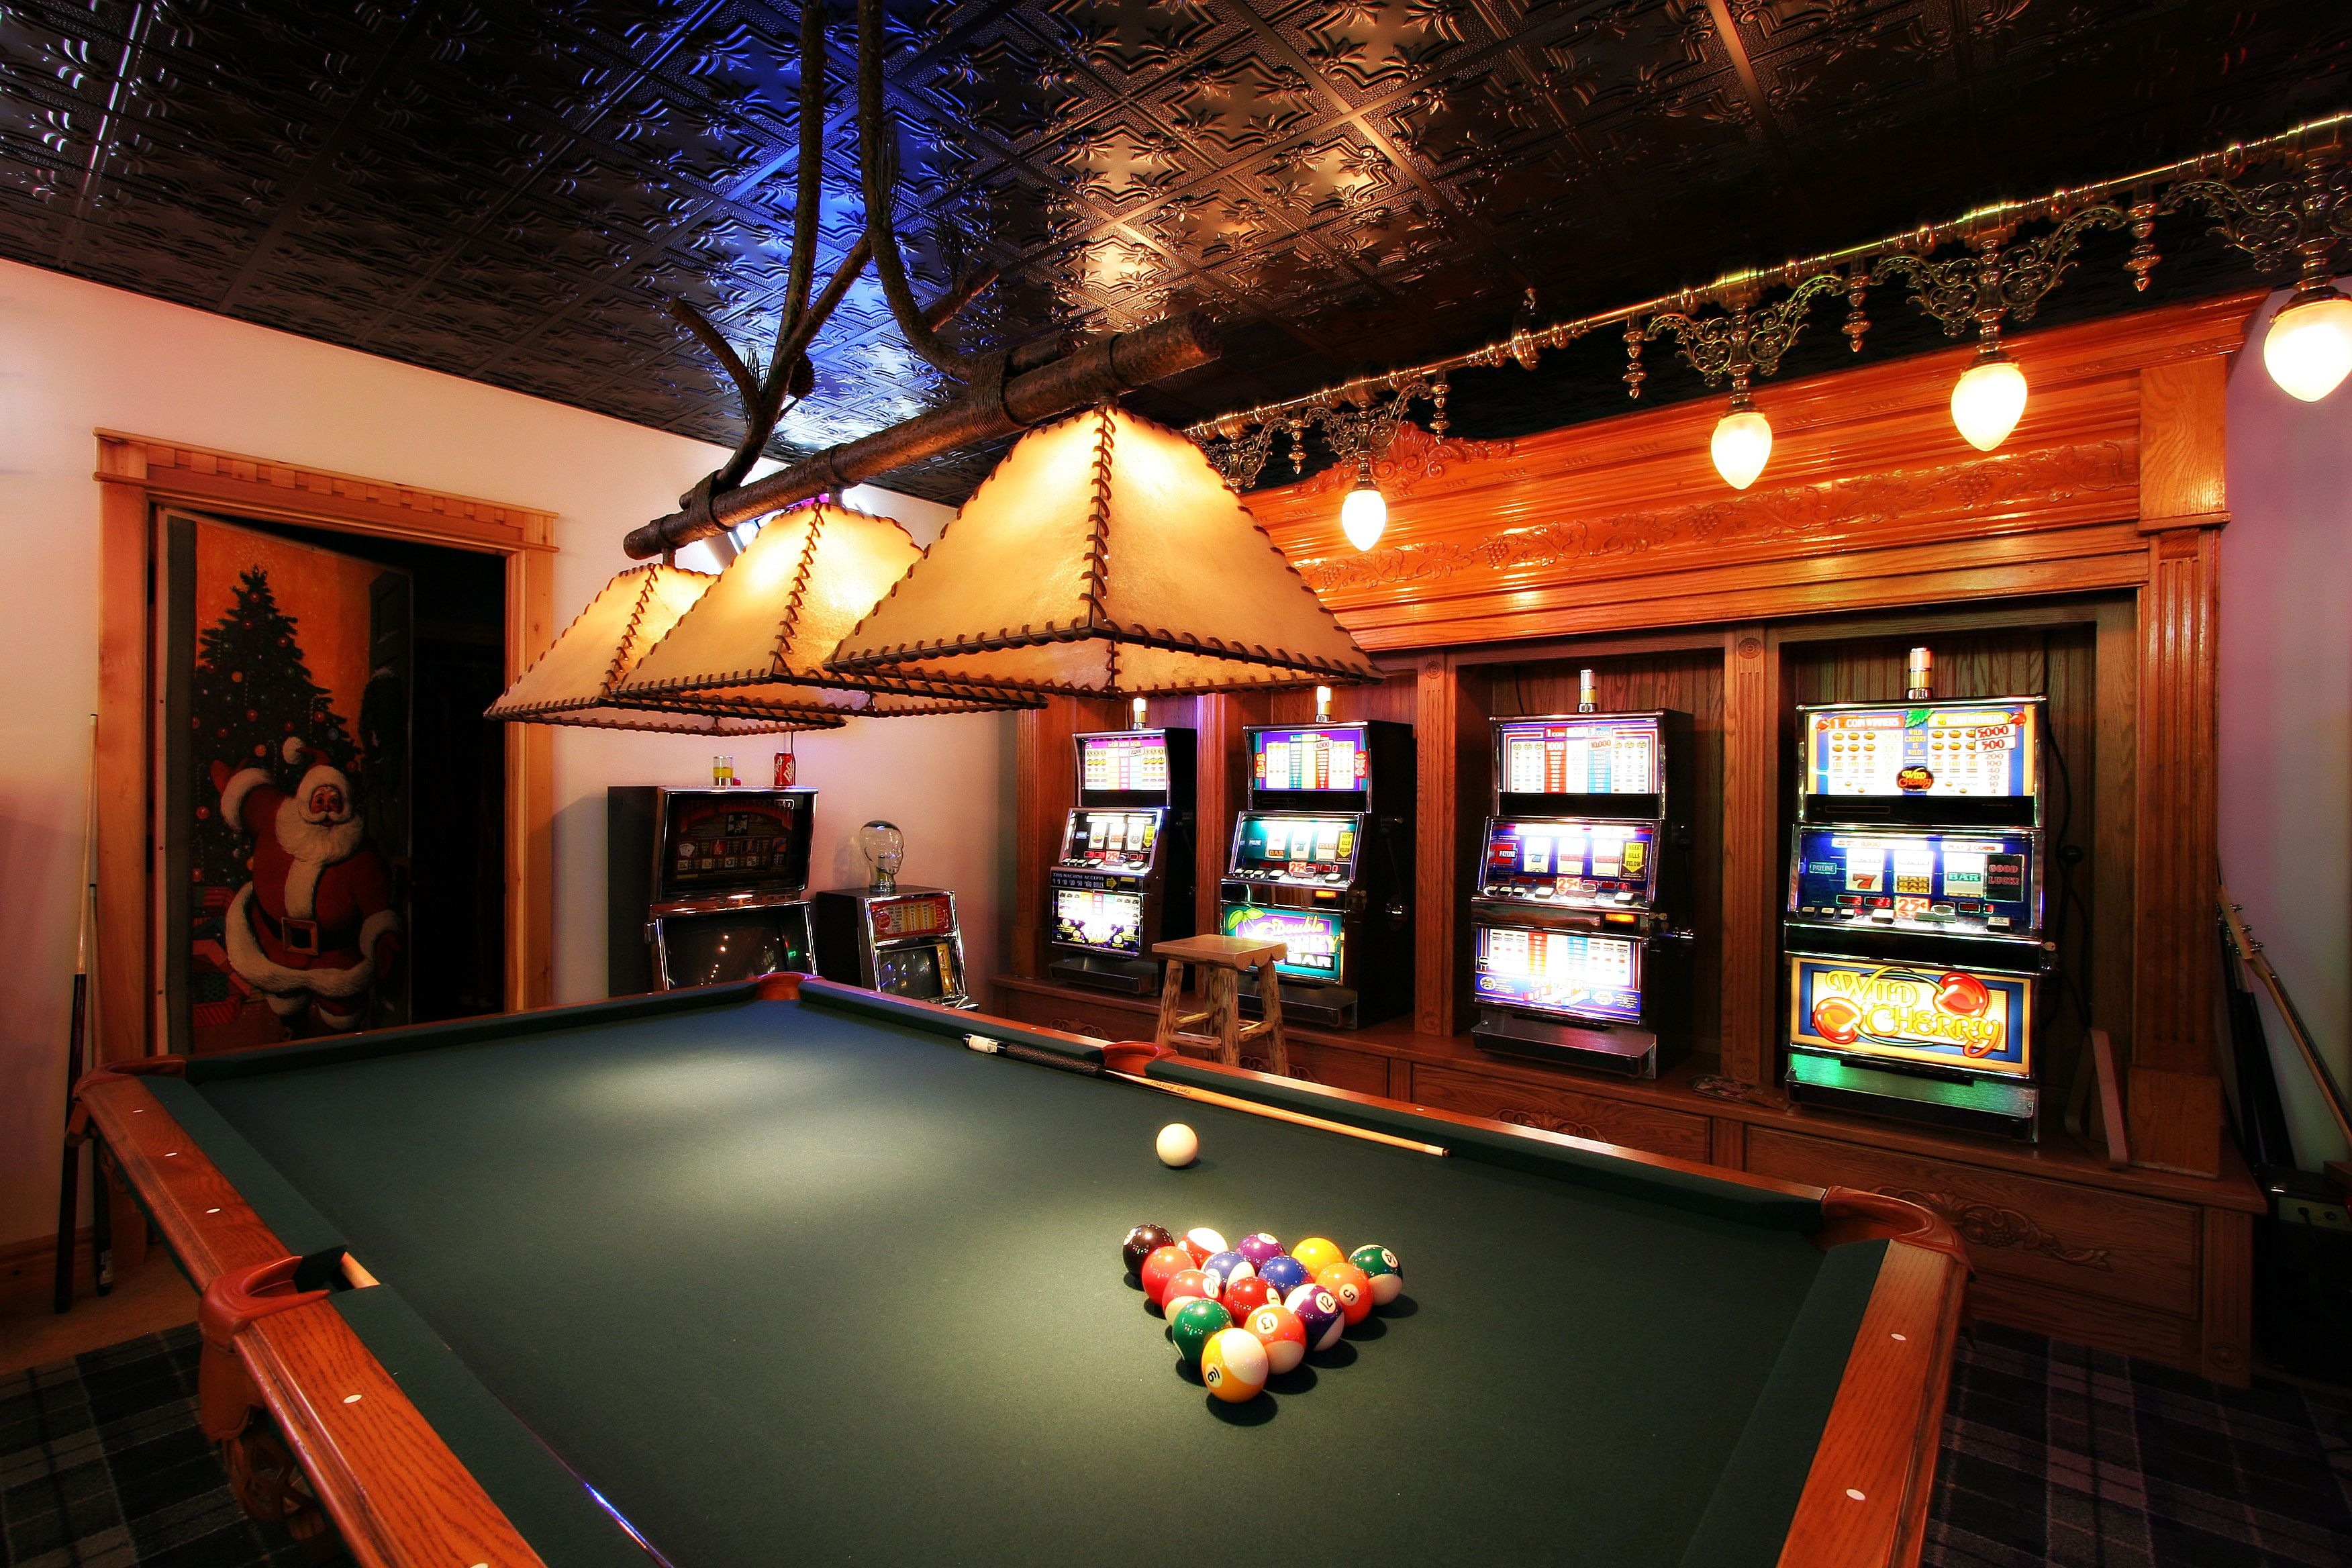 Pool Table And Slot Machines In A Basement Game Room Game Room